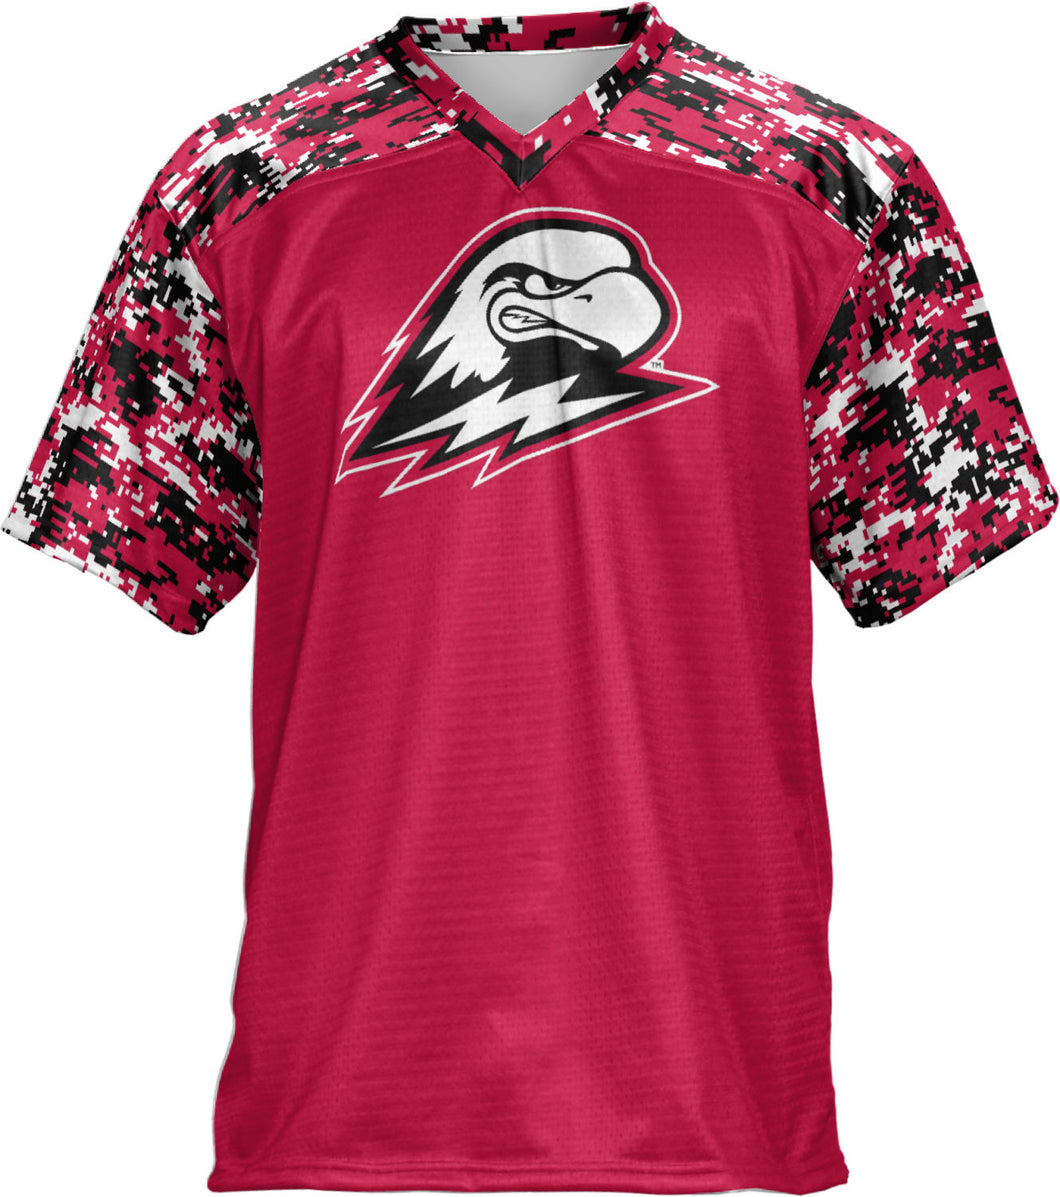 Southern Utah University: Boys' Football Fan Jersey - Digital